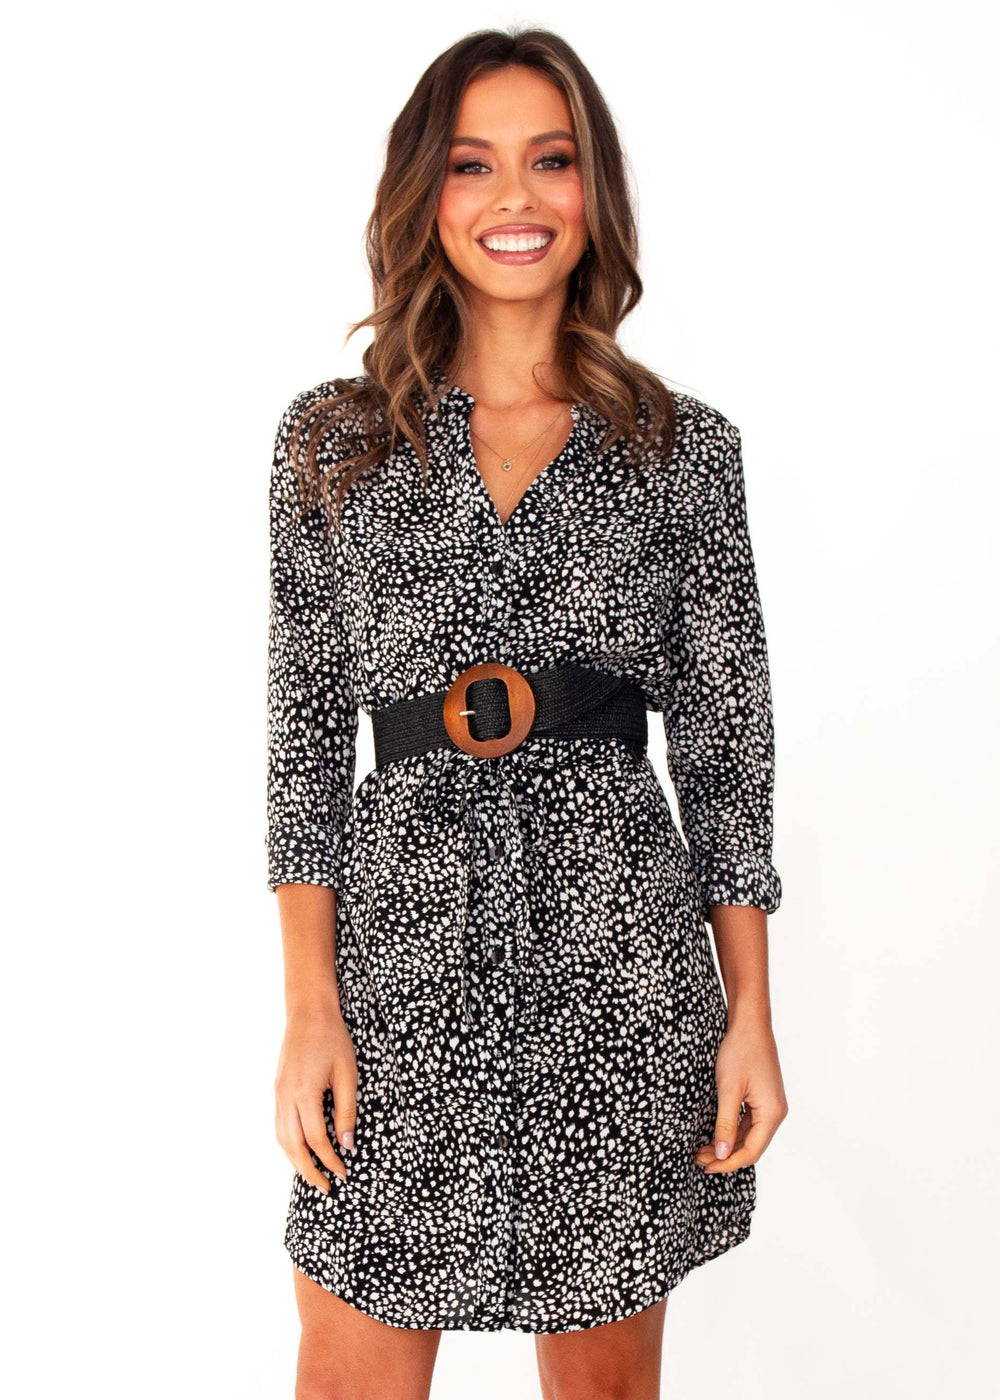 Women's Winslow Tunic Dress - Black Spot